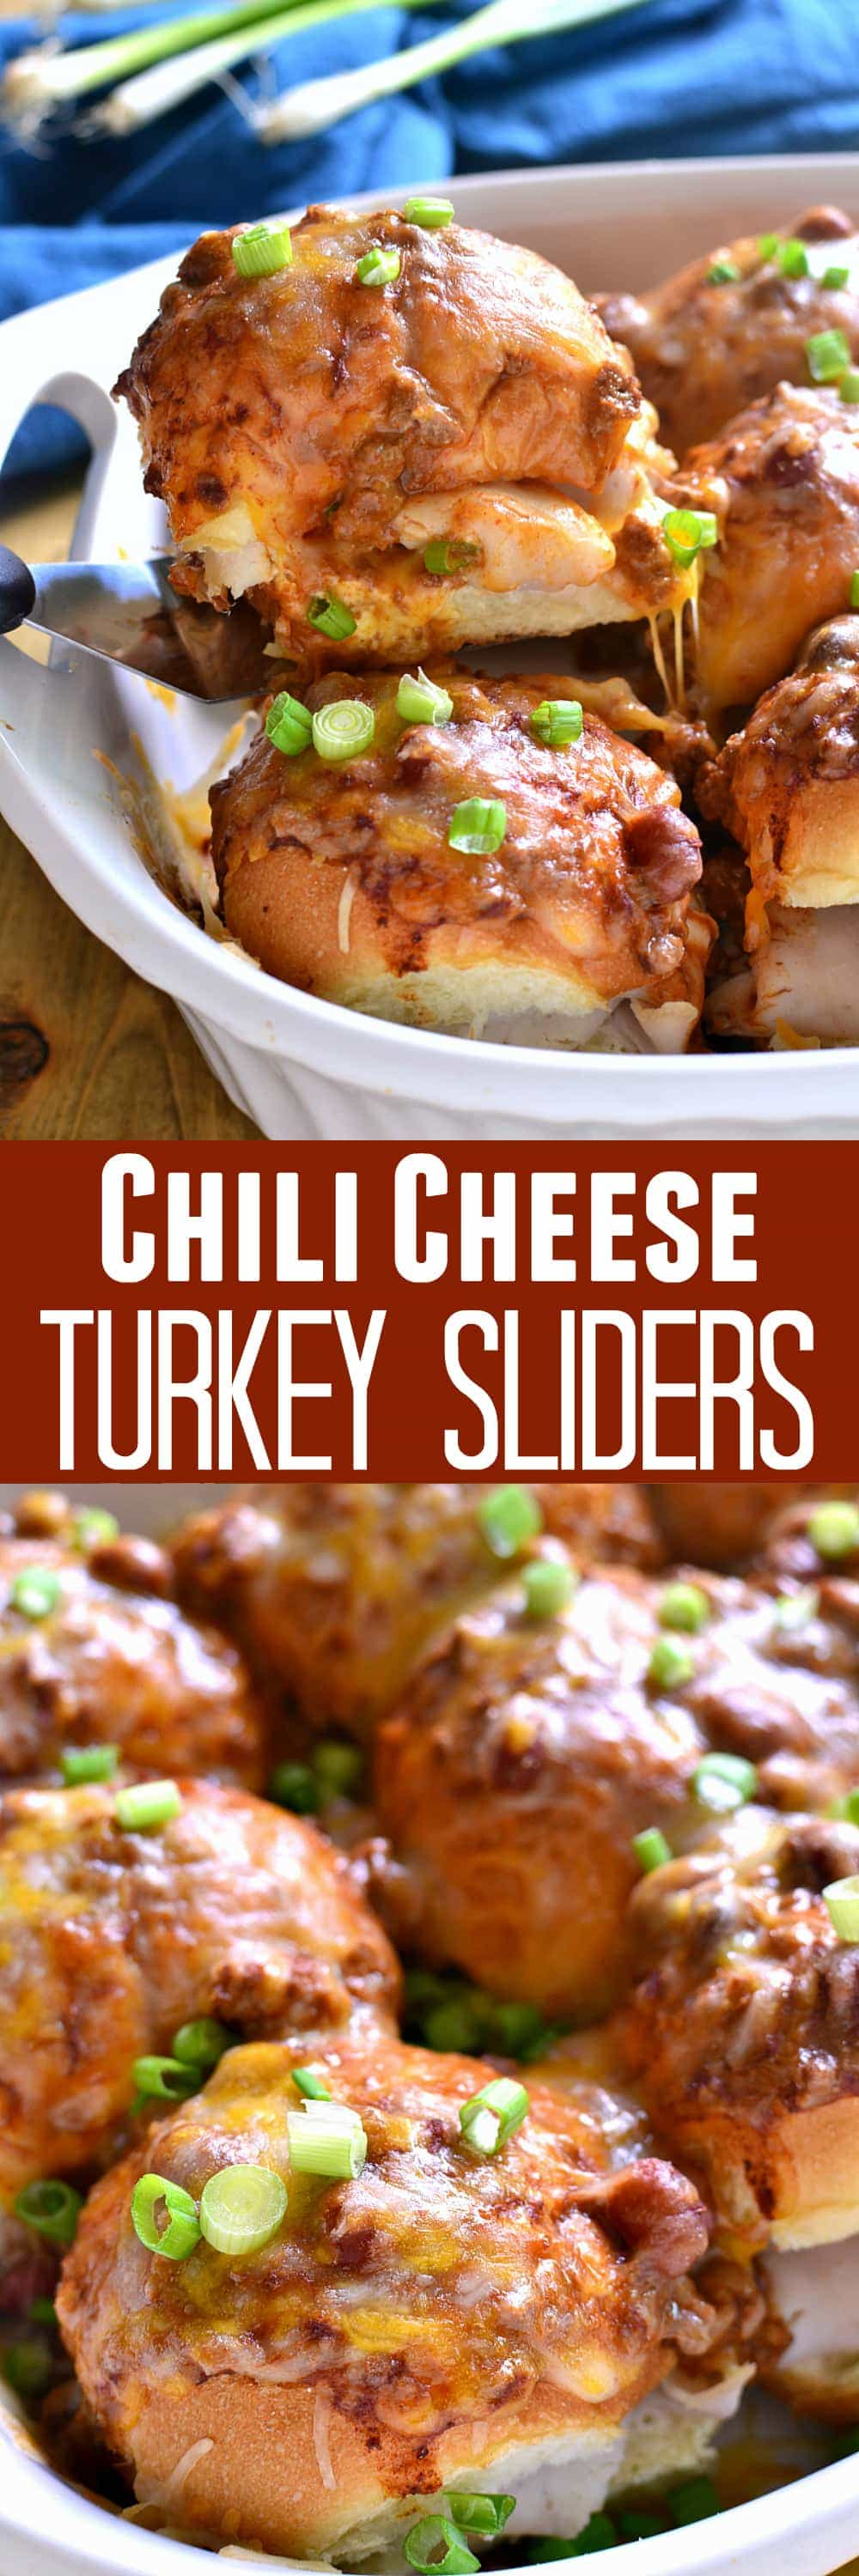 These Chili Cheese Turkey Sliders are packed with turkey and two kinds of cheese, then smothered in chili, cheese, and green onions. Perfect for game day or a quick & easy {make-ahead} weeknight dinner!